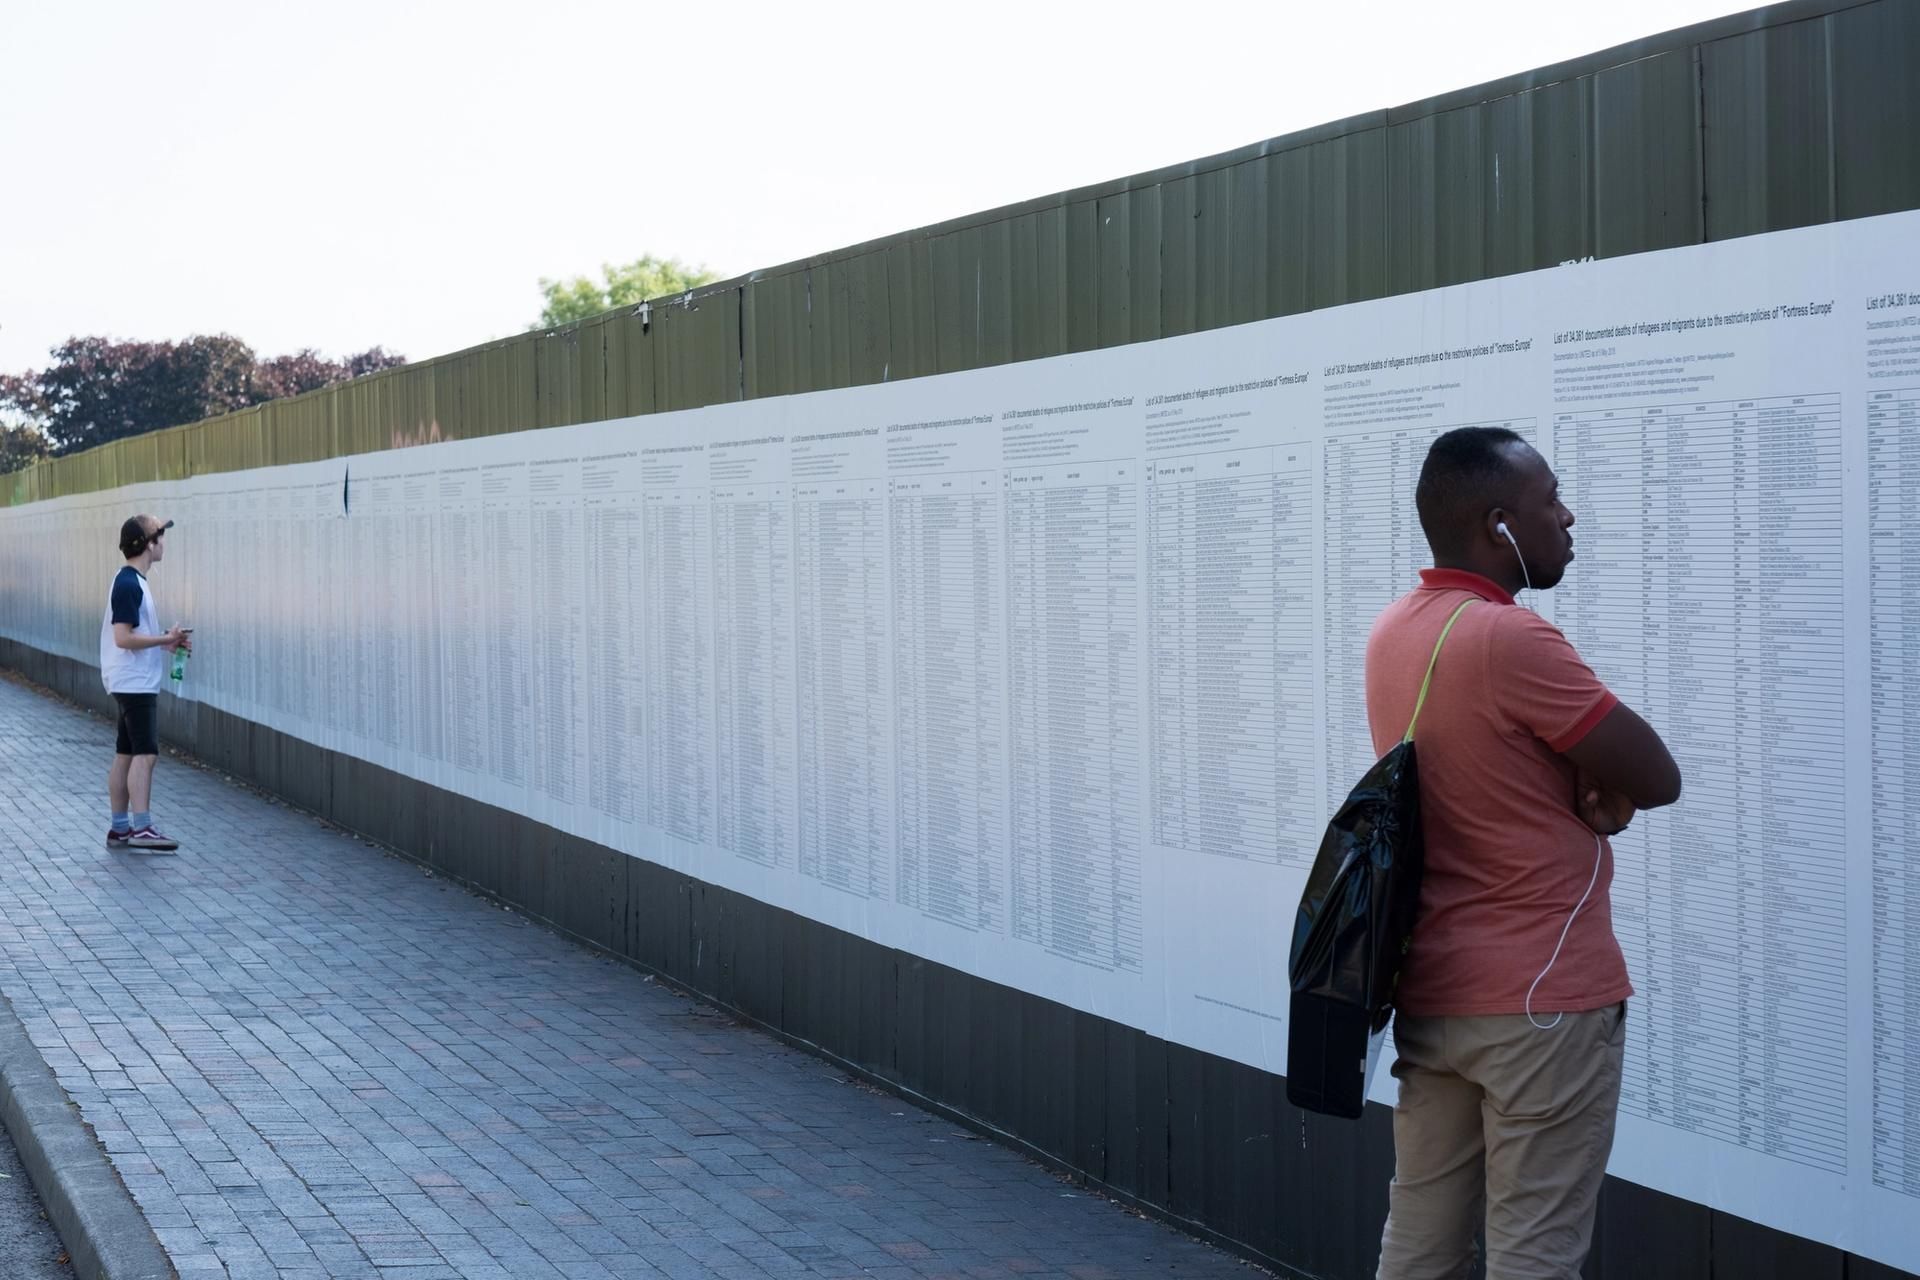 The biennial organisers are presenting The List in collaboration with the Turkish artist Banu Cennetoglu who has translated and widely distributed the list of names of refugees who have died, which is compiled and updated each year by United for Intercultural Action, a network of 550 organisations in 48 countries. Photo: Mark McNulty